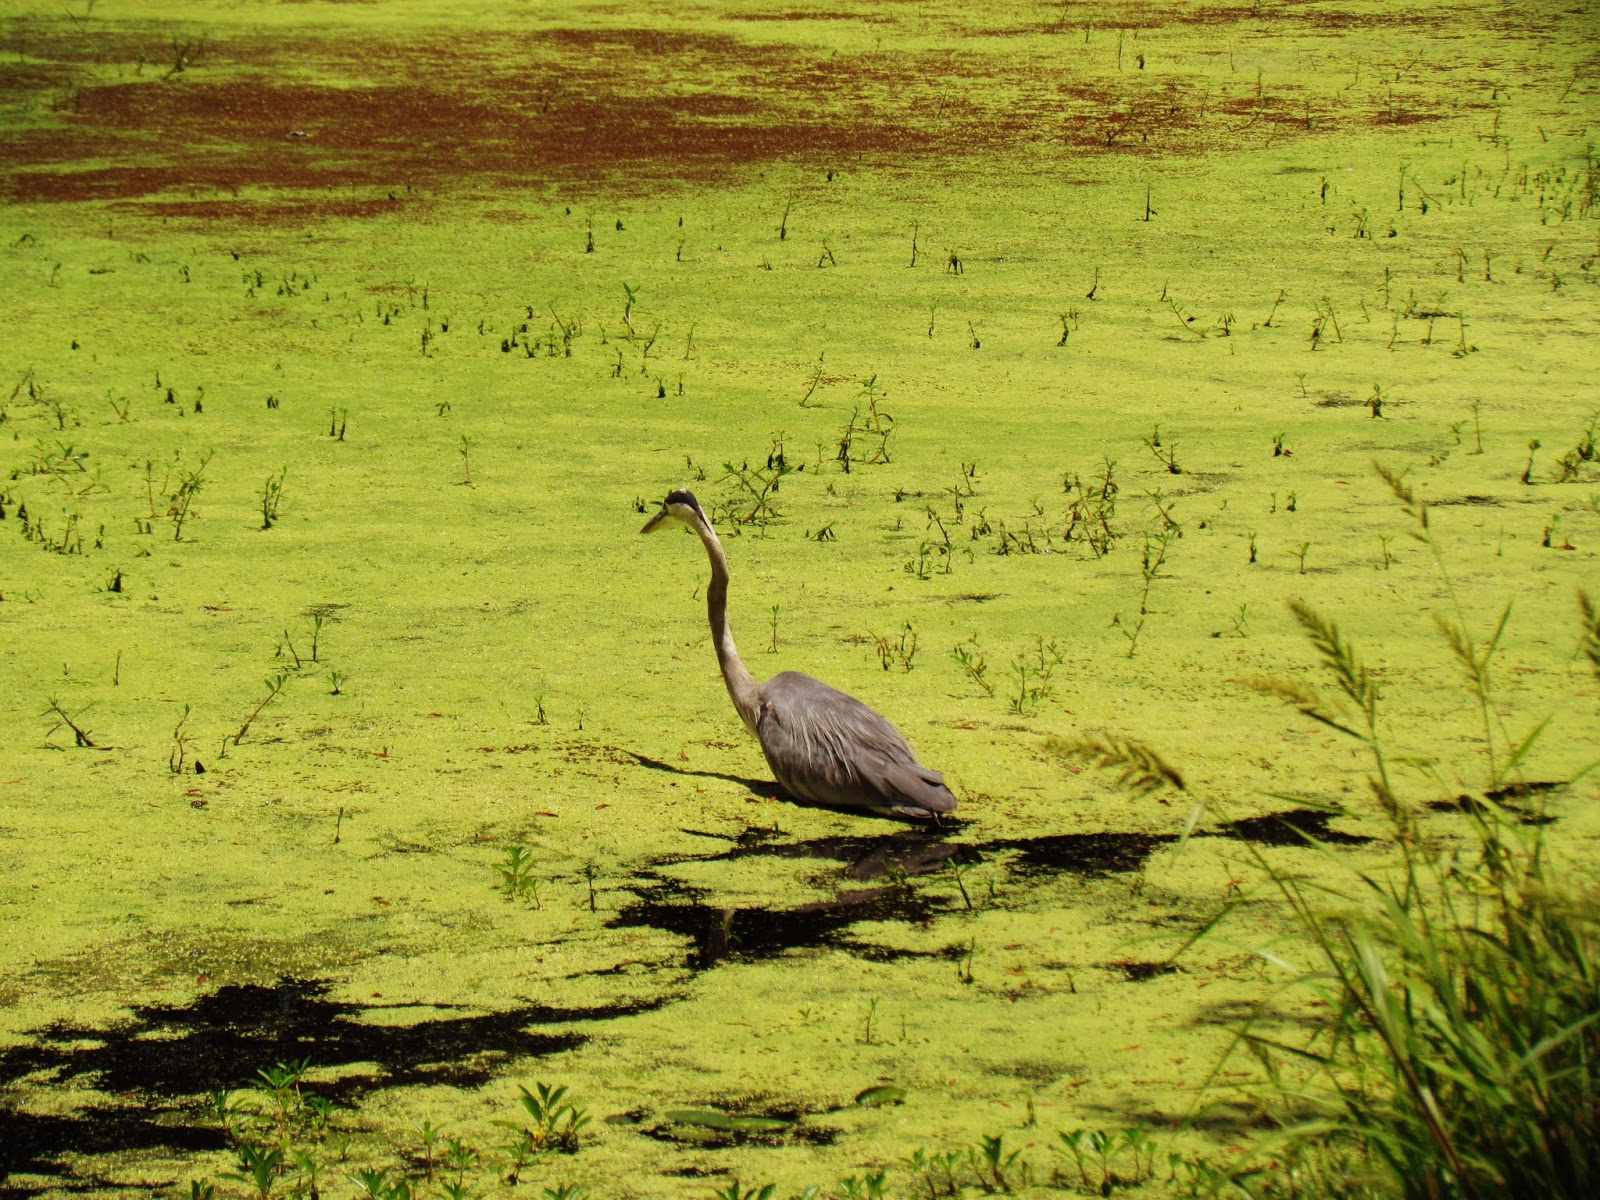 Green Swamp Water With Moss and Lily Pads and a Gray Ibis Bird Birds of Prey Hunting Fish